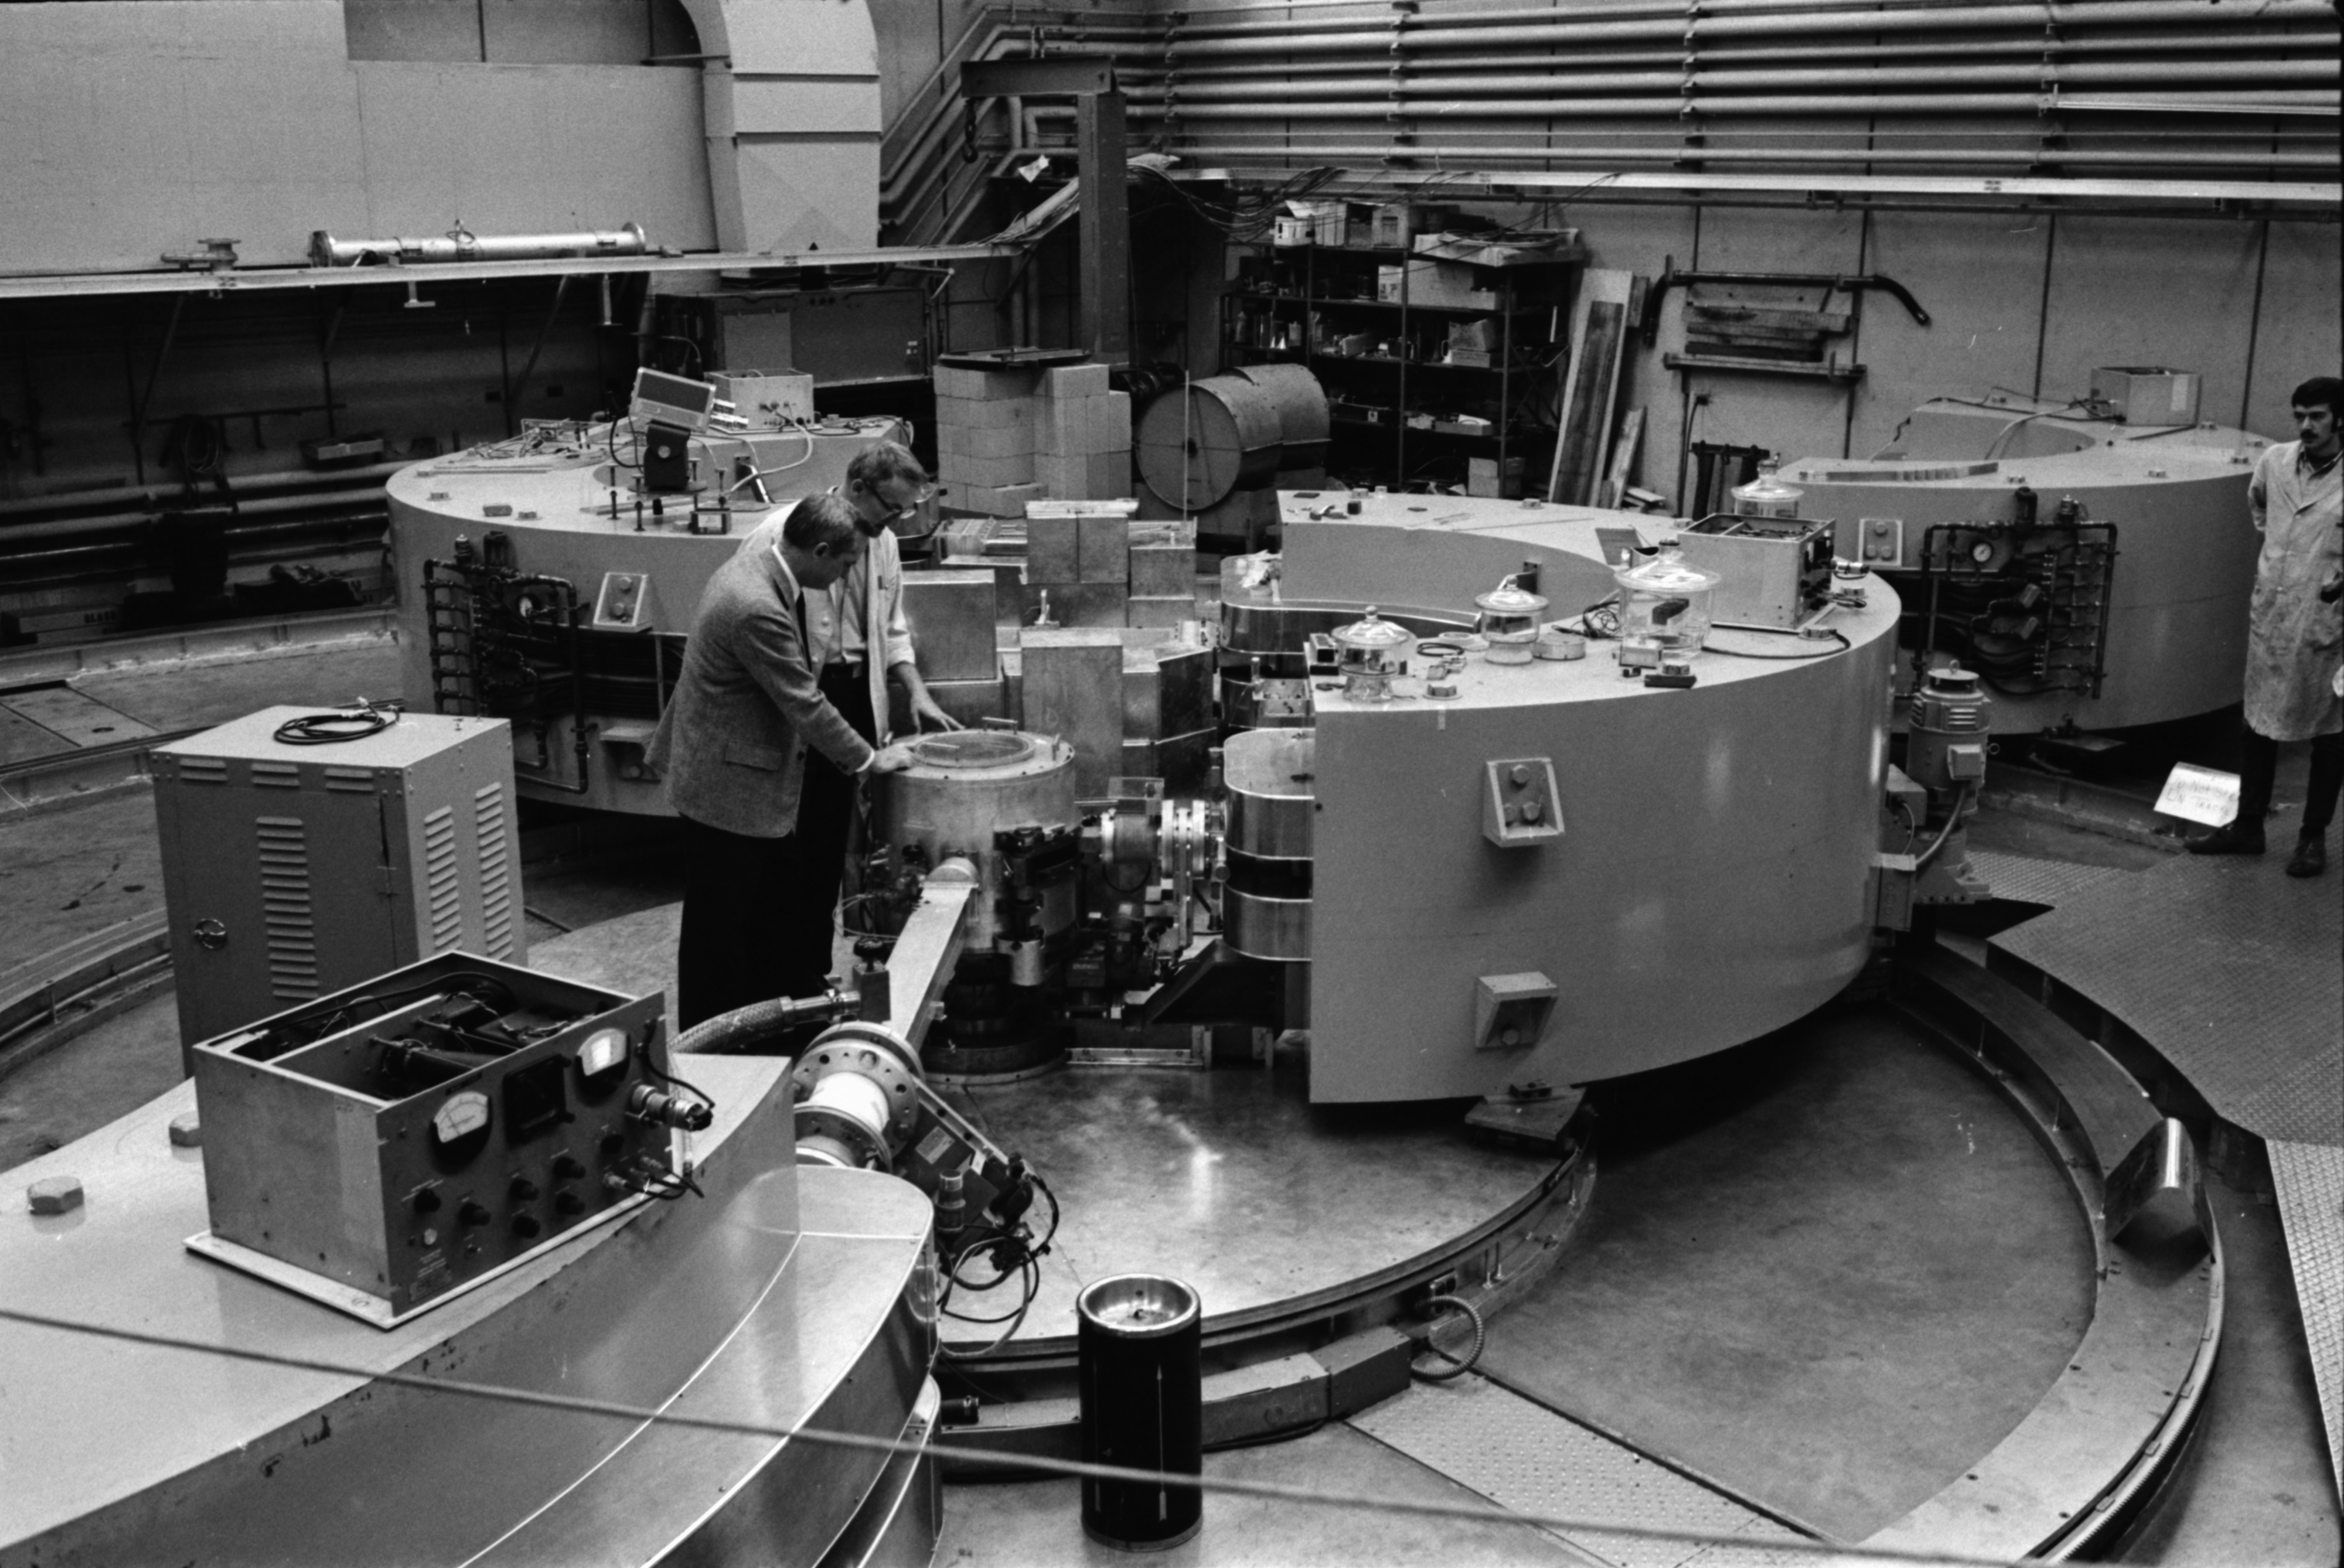 University of Michigan Cyclotron, October 1969 image